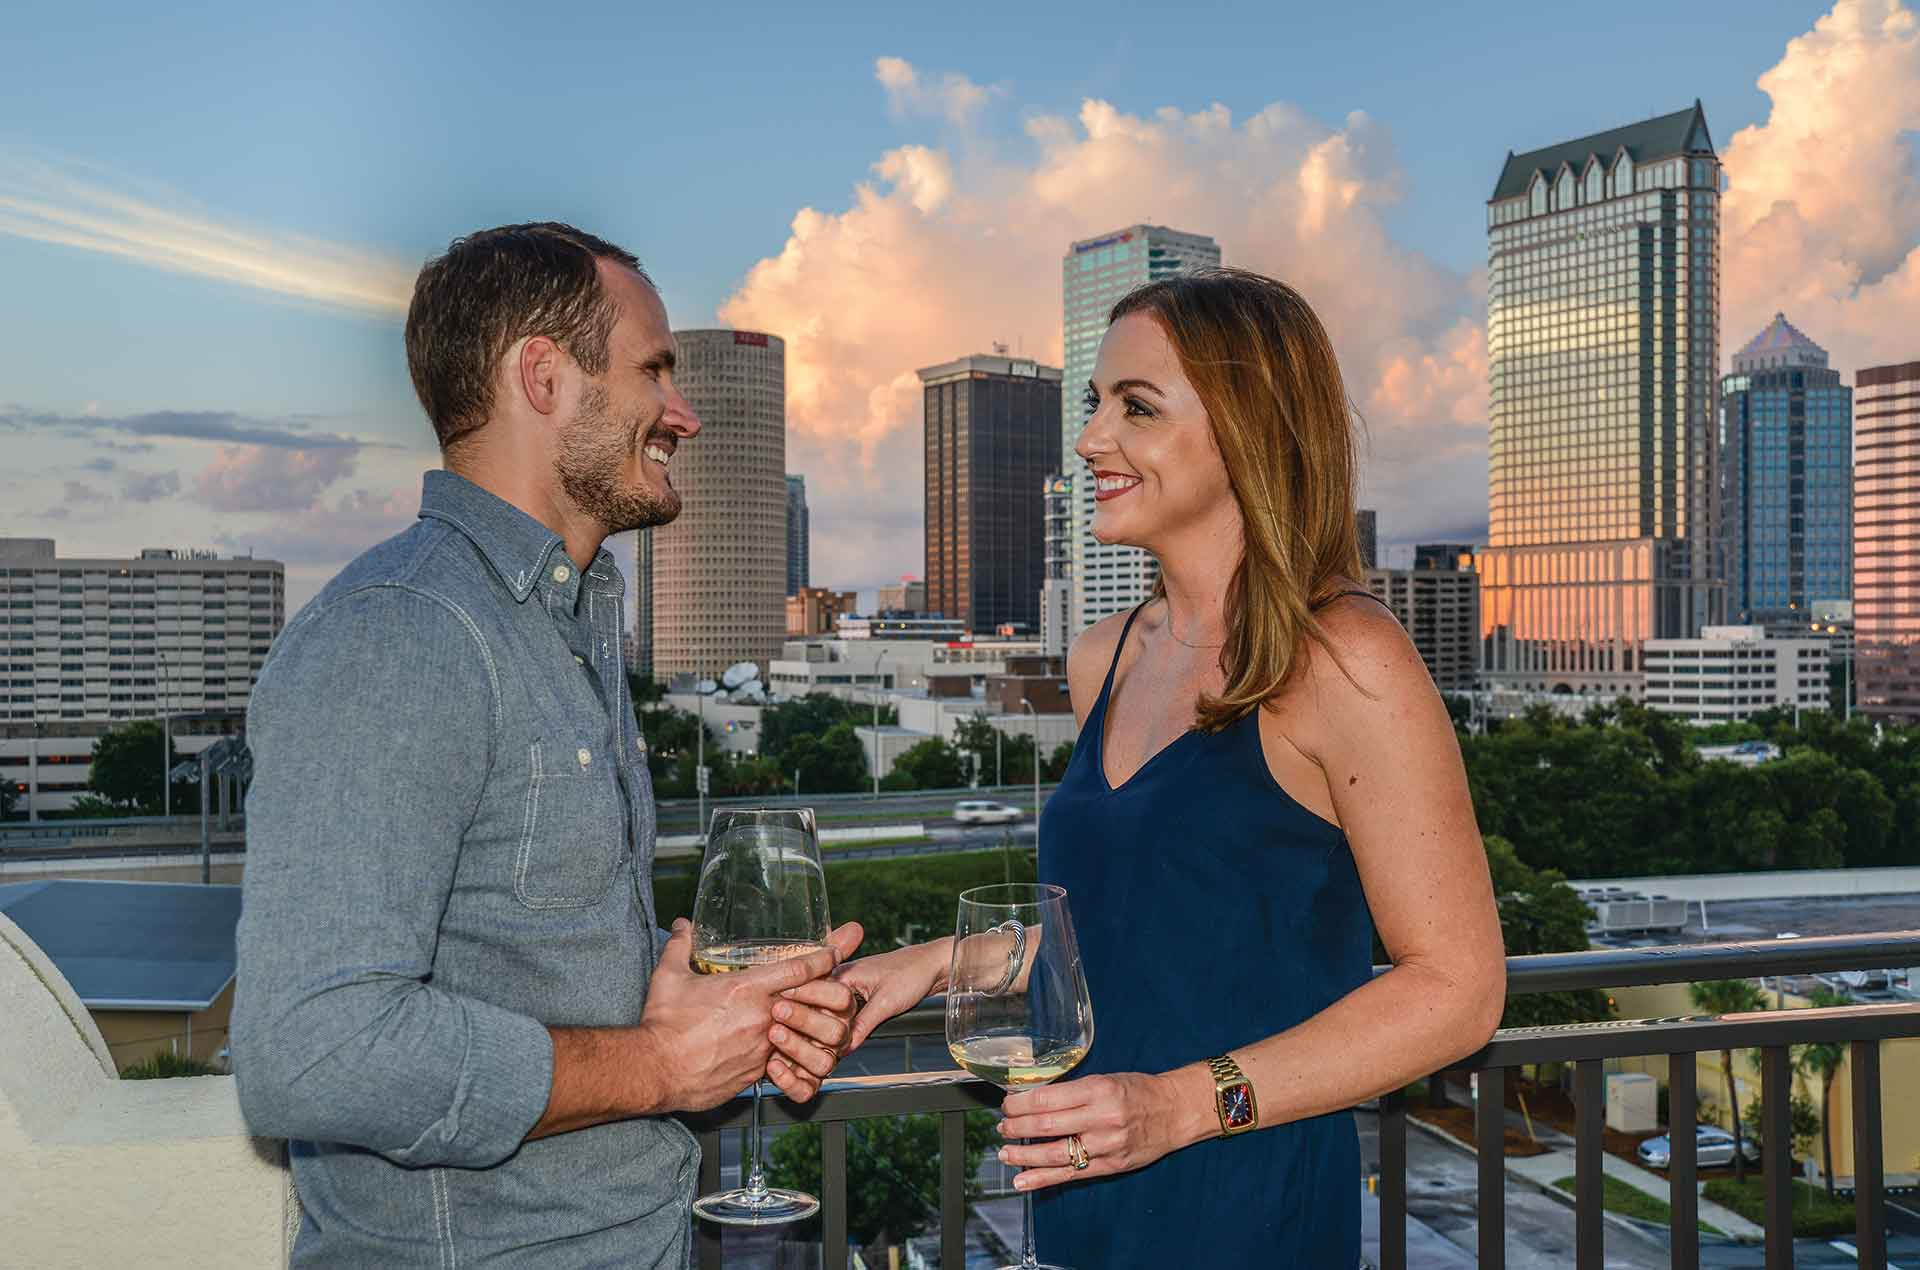 <h1>Brand New Luxury South Tampa Apartments</h1> <p>Breathtaking waterfront views of Tampa Bay and Soho's hippest restaurants are waiting for you.</p>